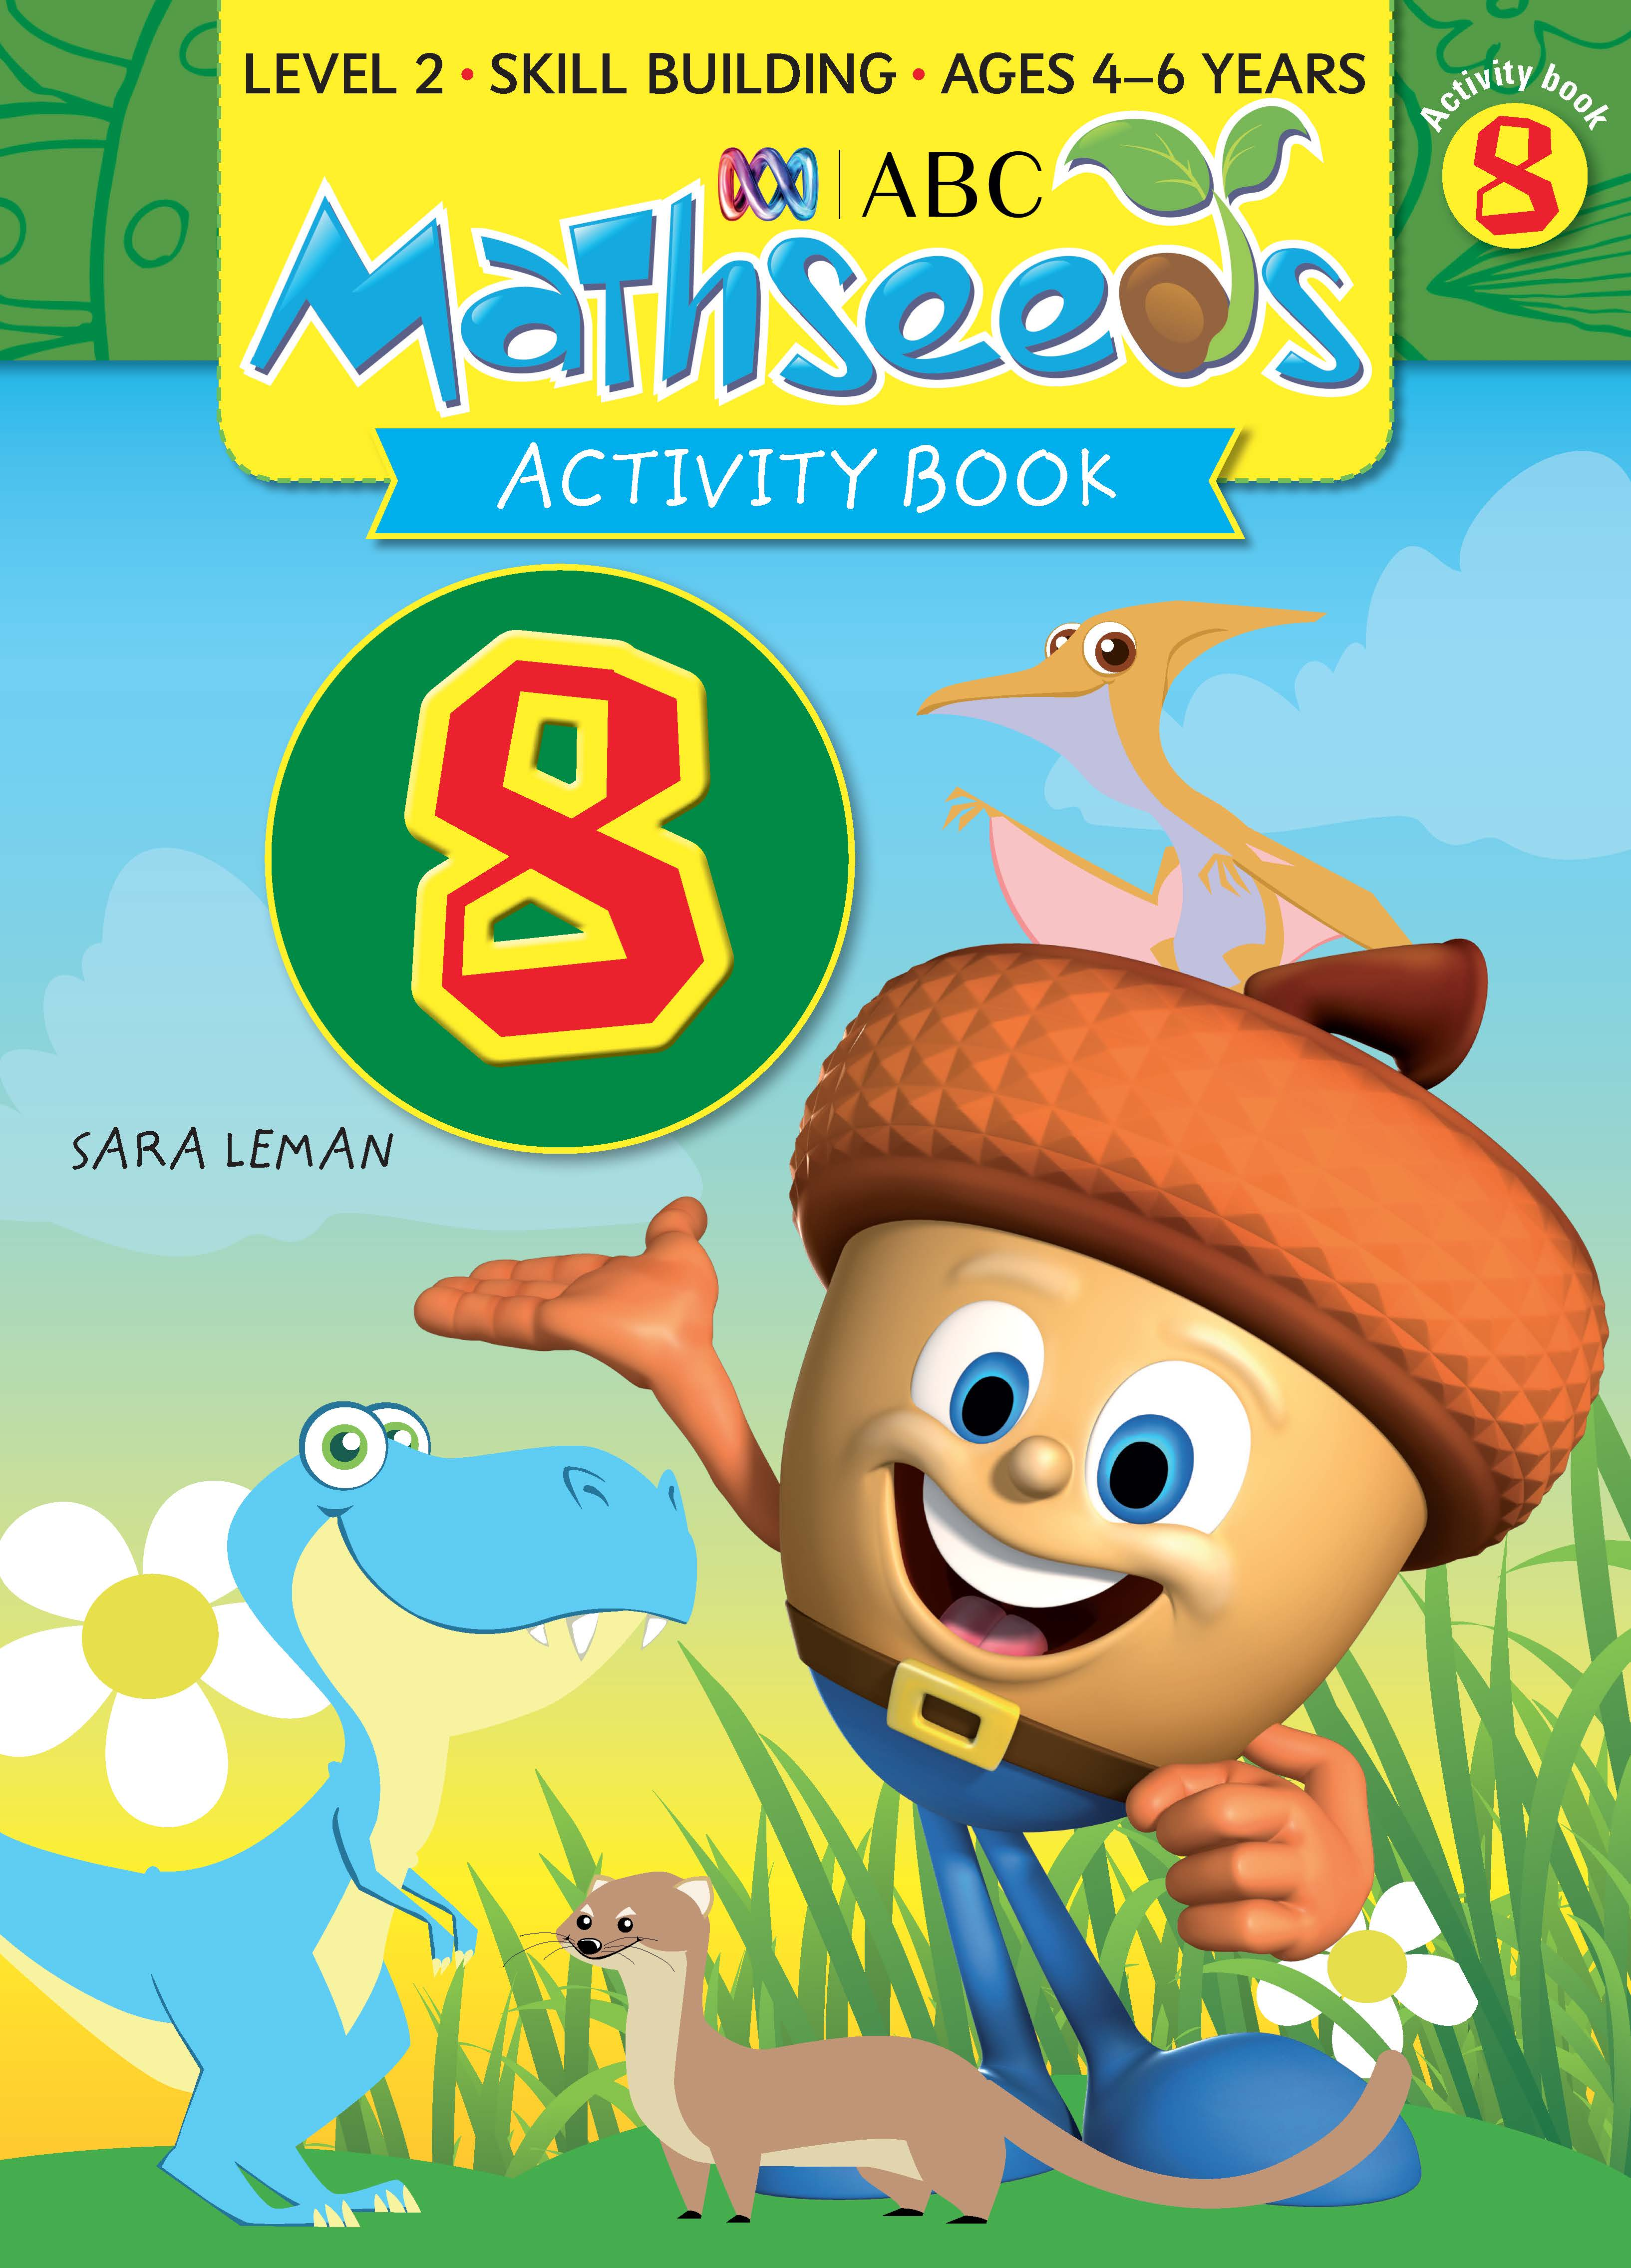 ABC Mathseeds Activity Book 8 Level 2 Ages 4-6